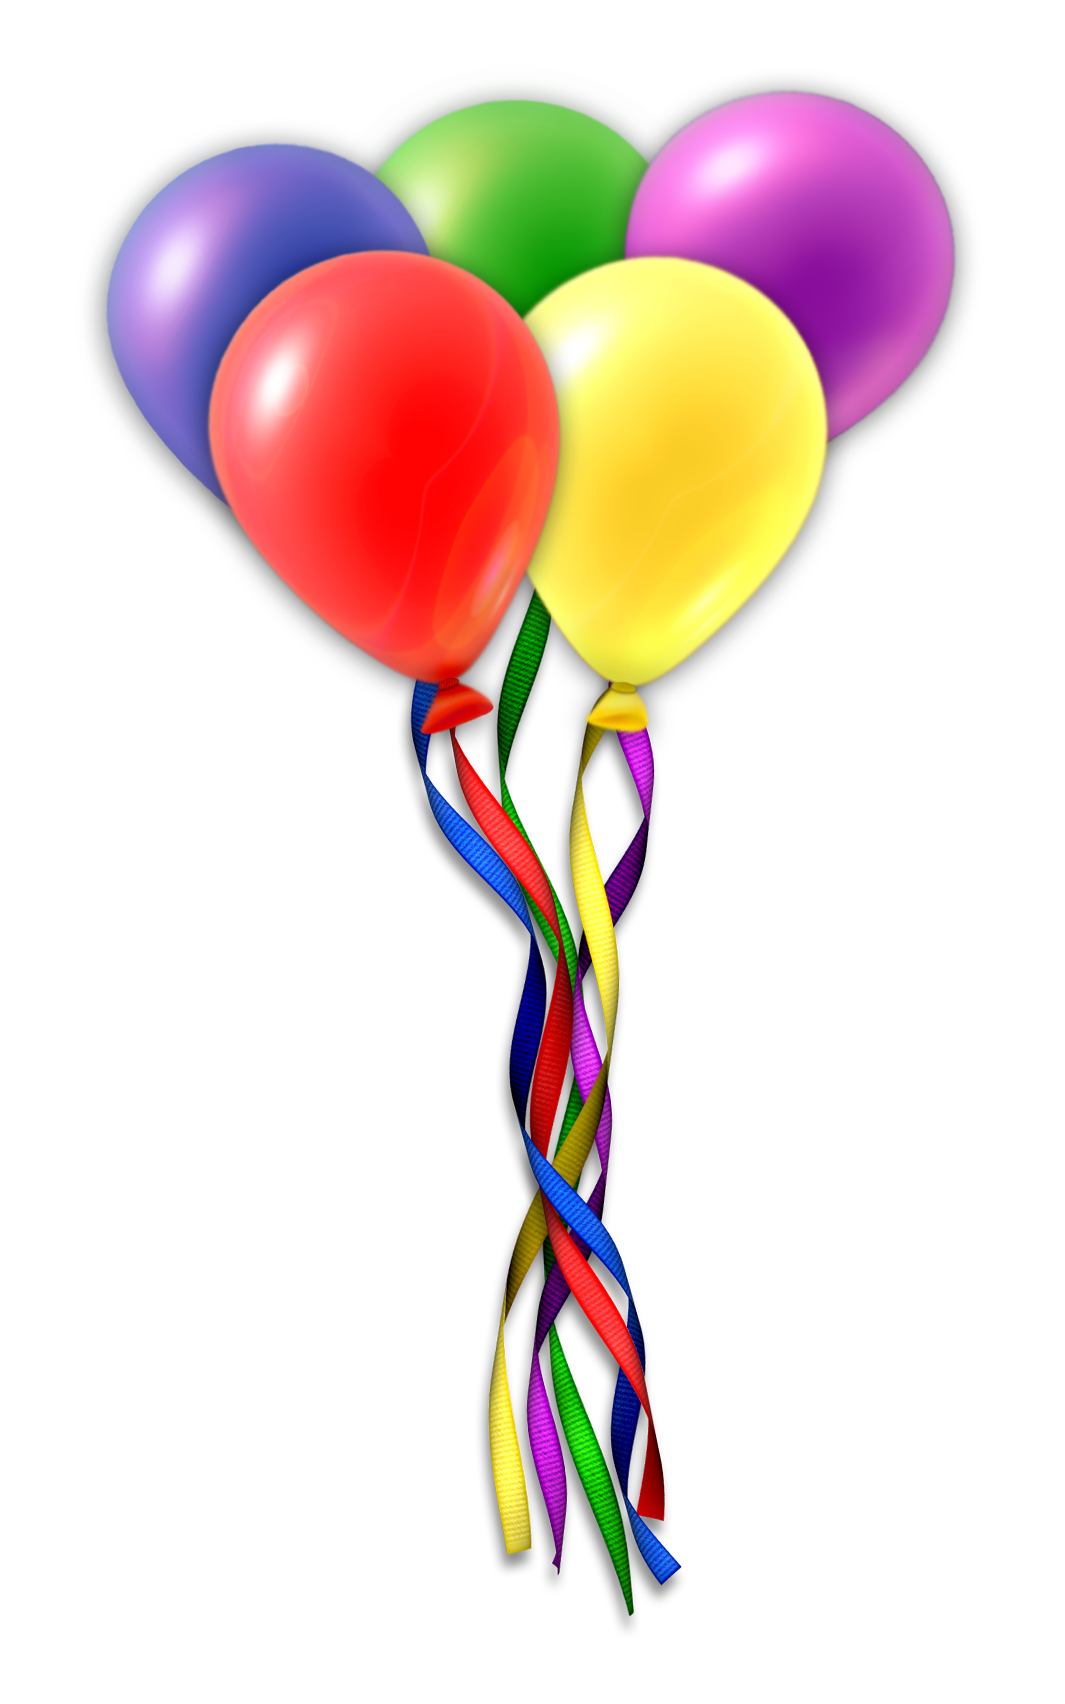 Balloons party png. Transparent images all